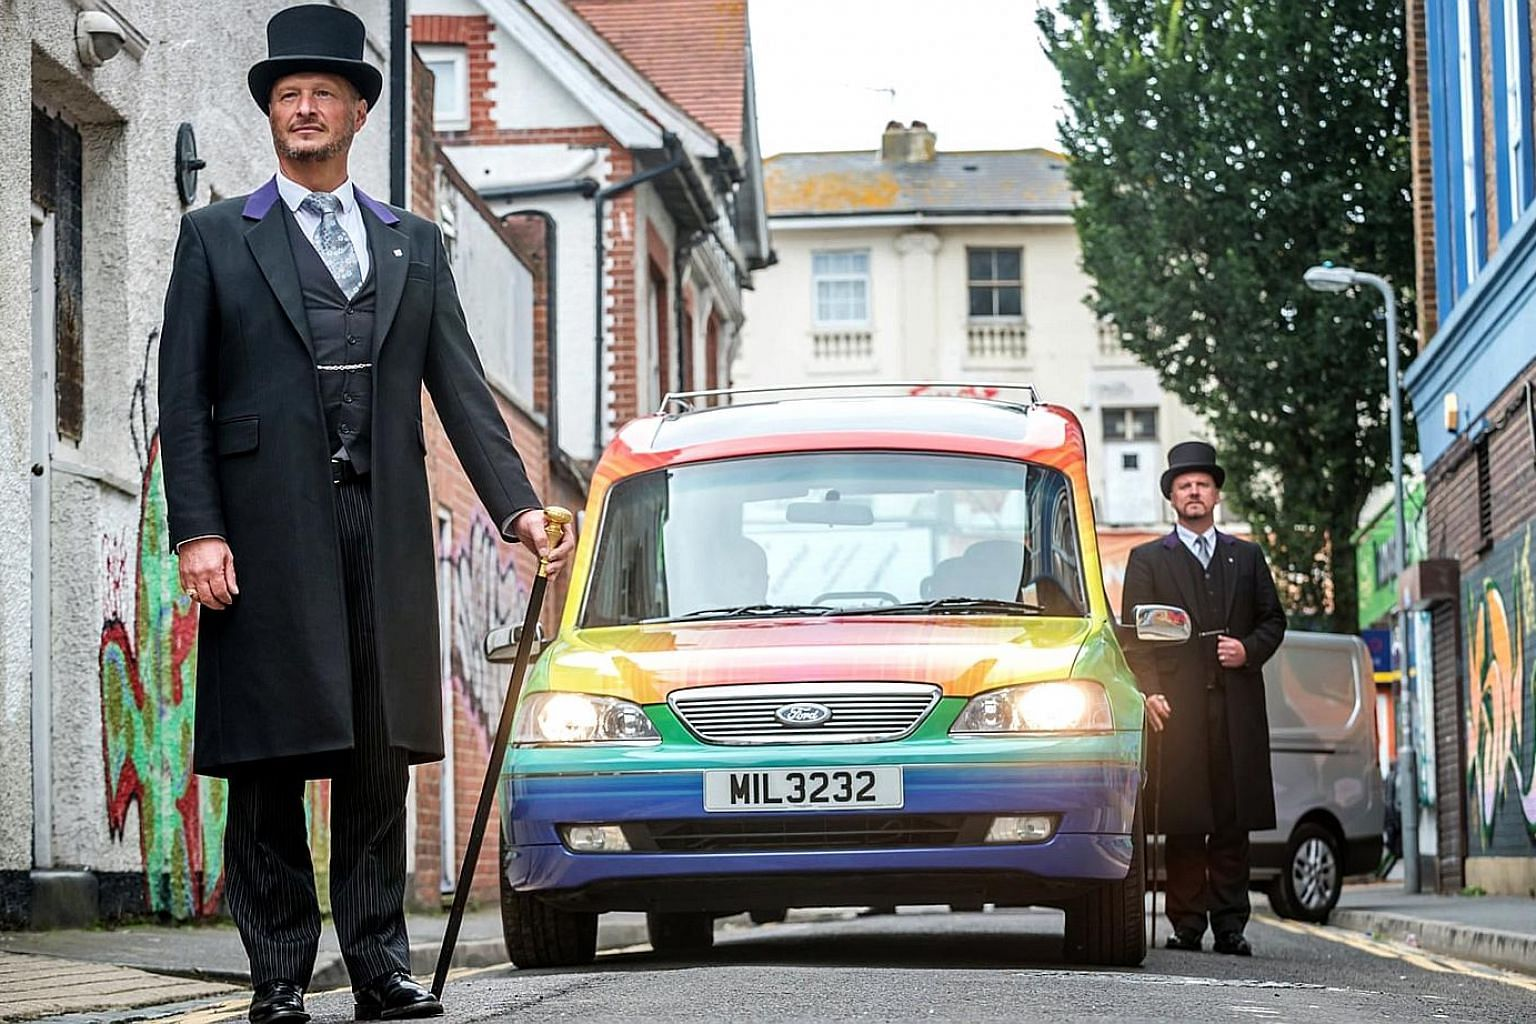 Co-op Funeralcare's rainbow hearse is requested, on average, twice a month by families across Britain.